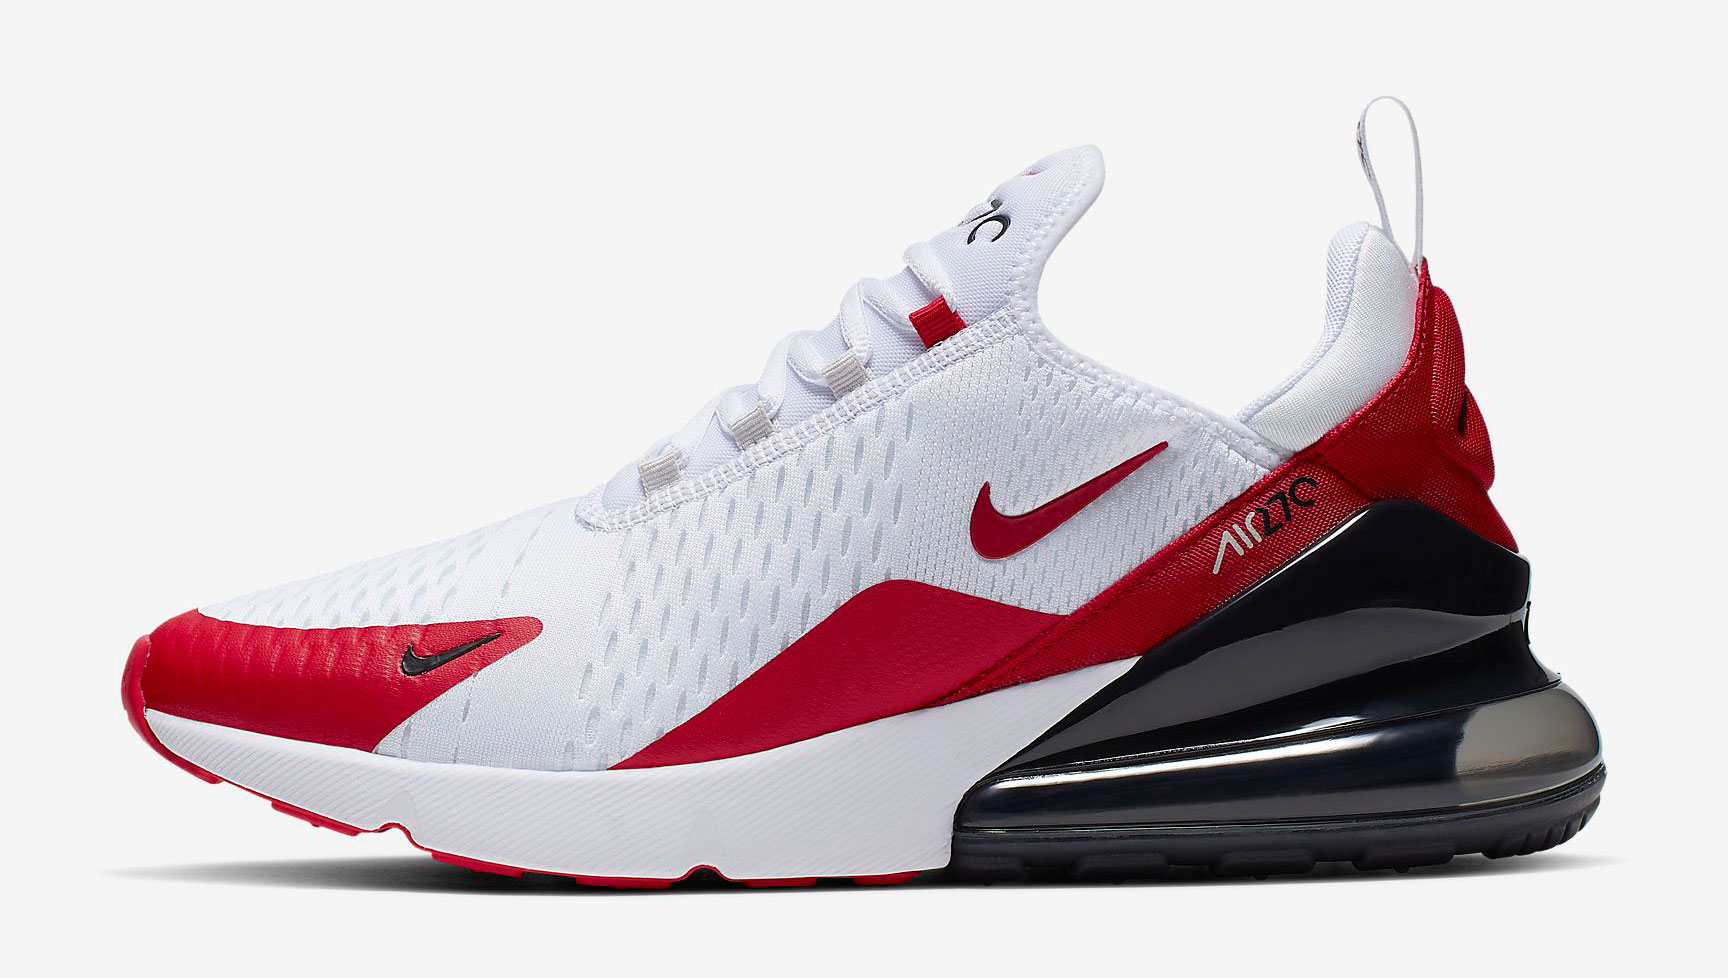 nike-air-max-270-white-university-red-release-date-where-to-buy